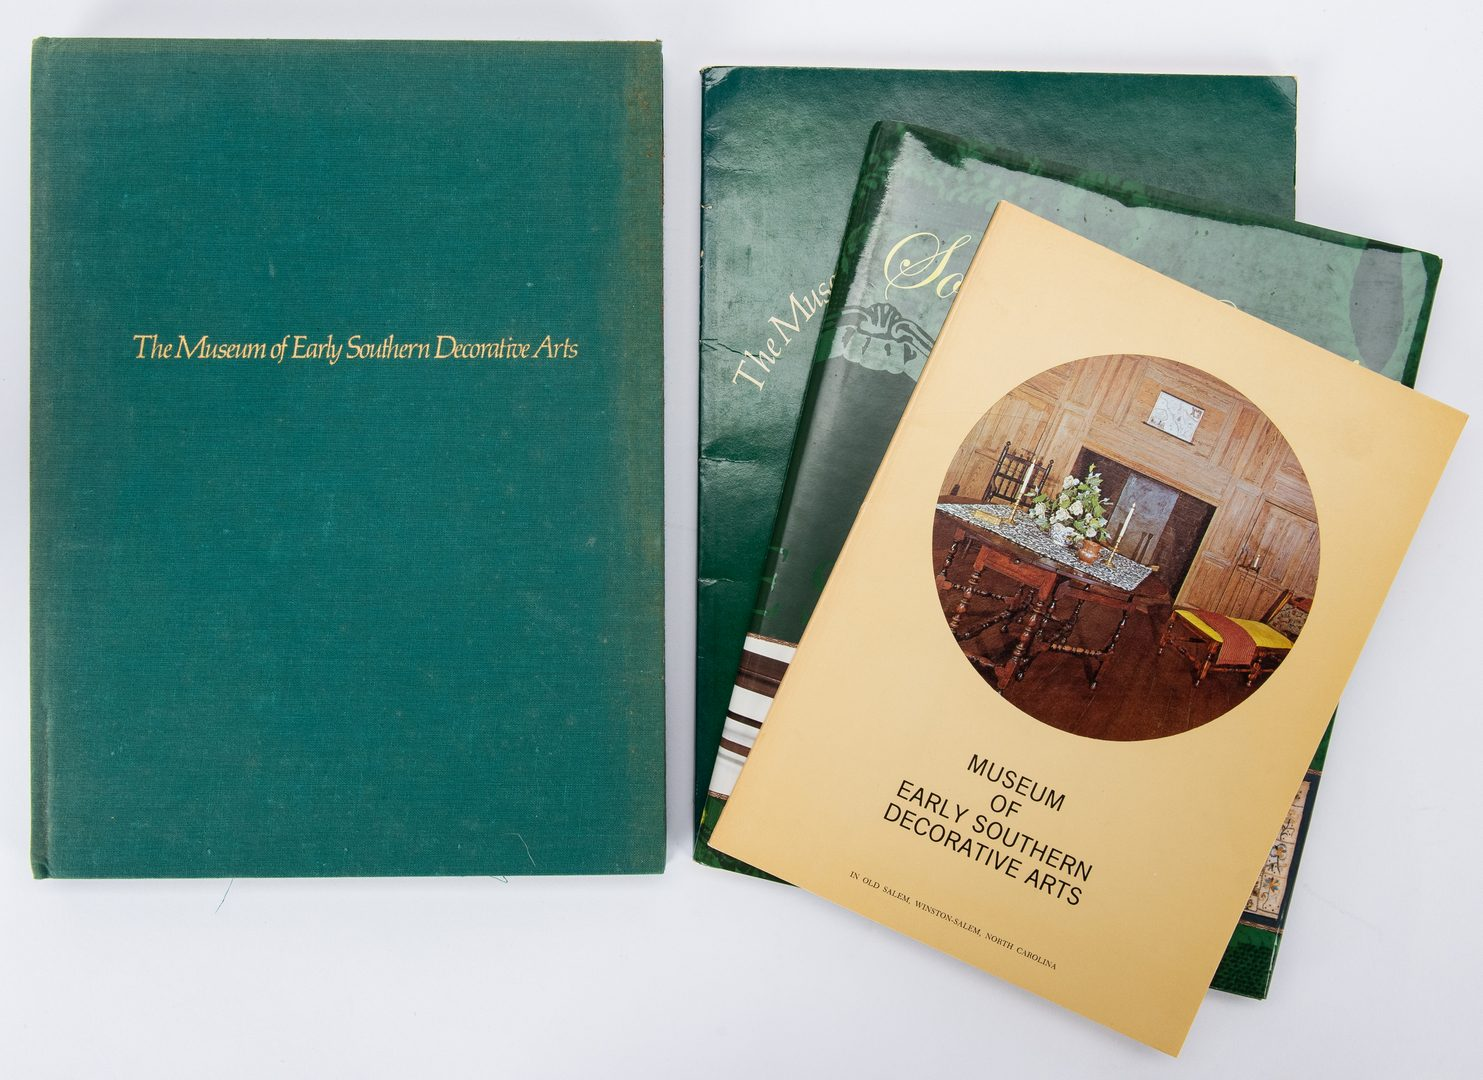 Lot 373: 26 Books on Southern Dec. Arts, inc. MESDA